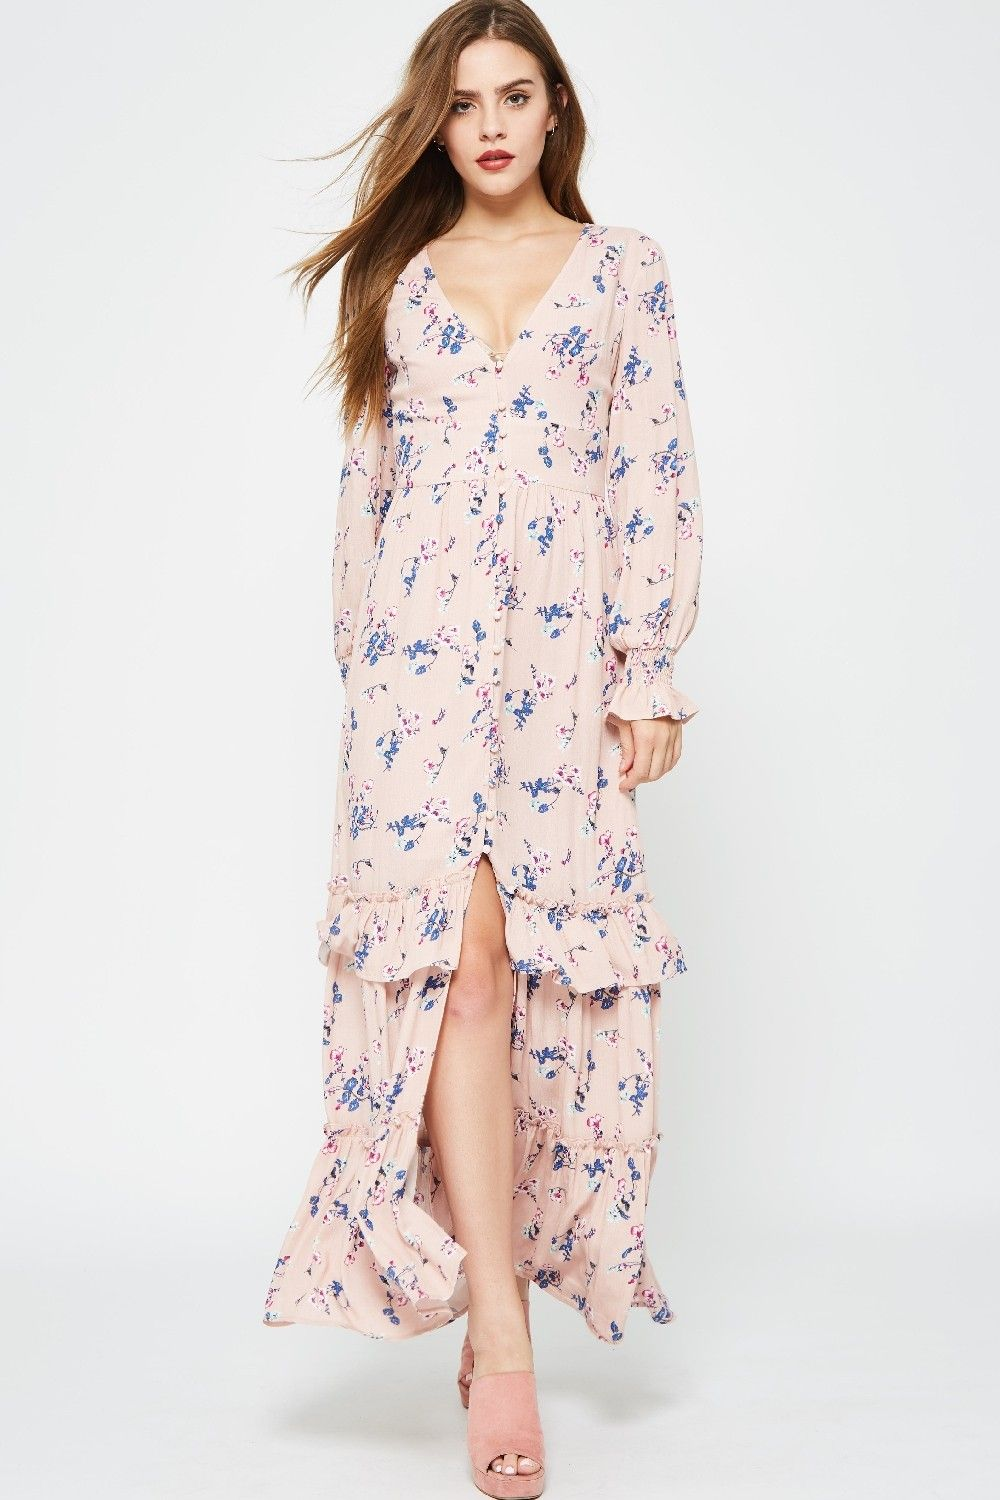 Hrd a floral maxi dress featuring smocked long sleeves